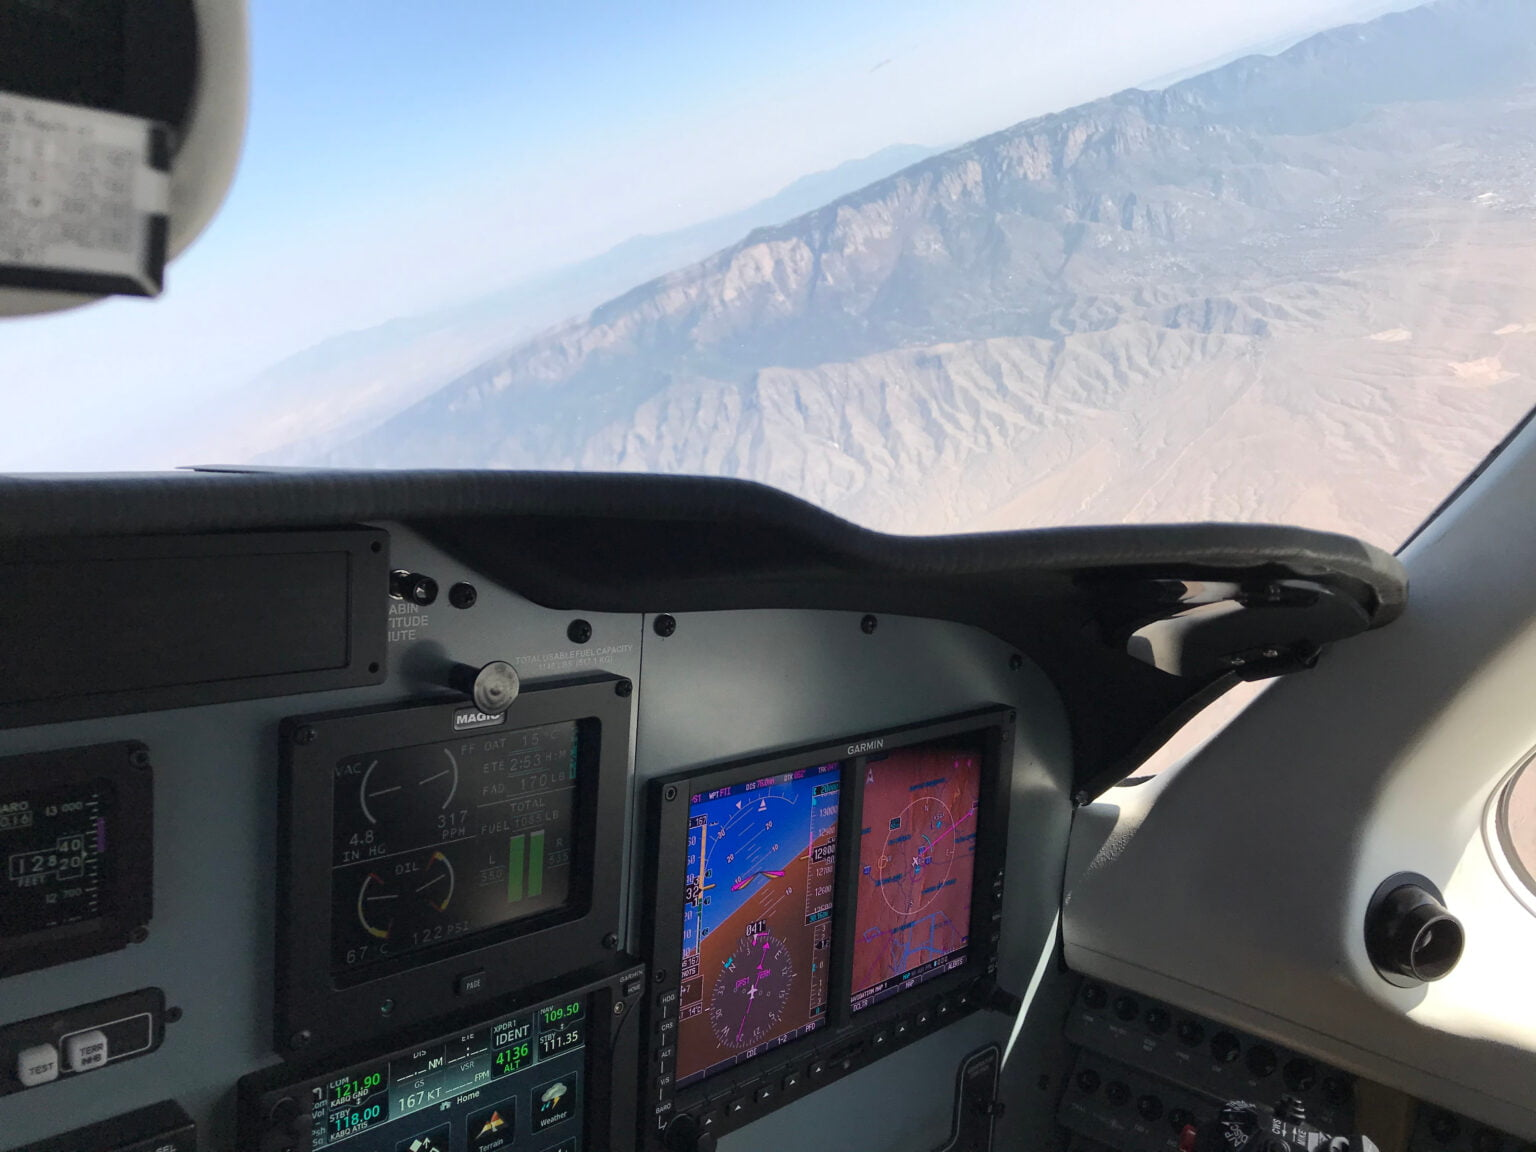 G500 Avionics with a view